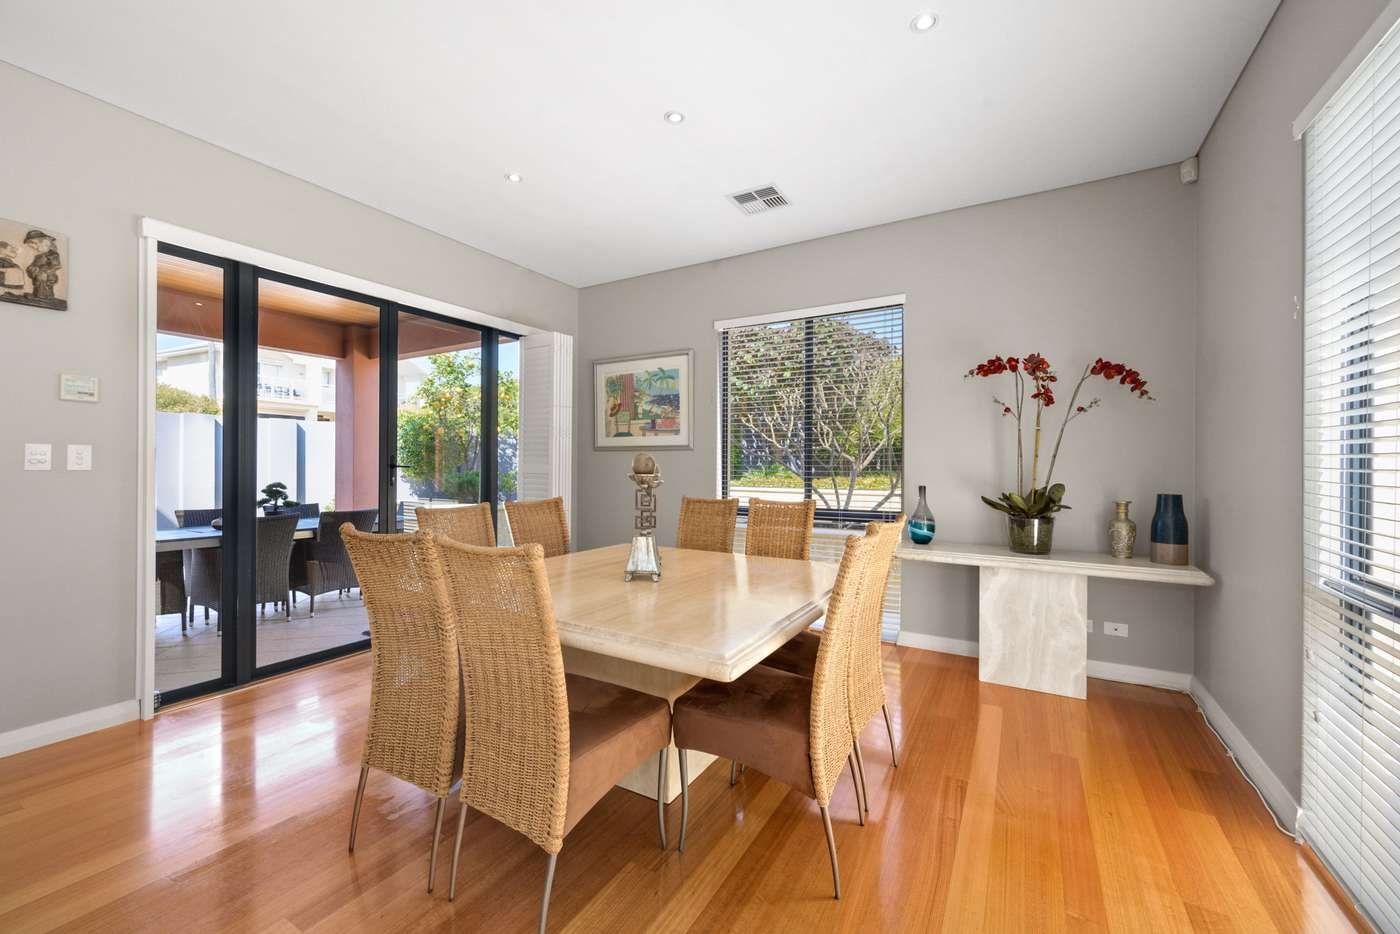 Sixth view of Homely house listing, 24 Frobisher Avenue, Sorrento WA 6020